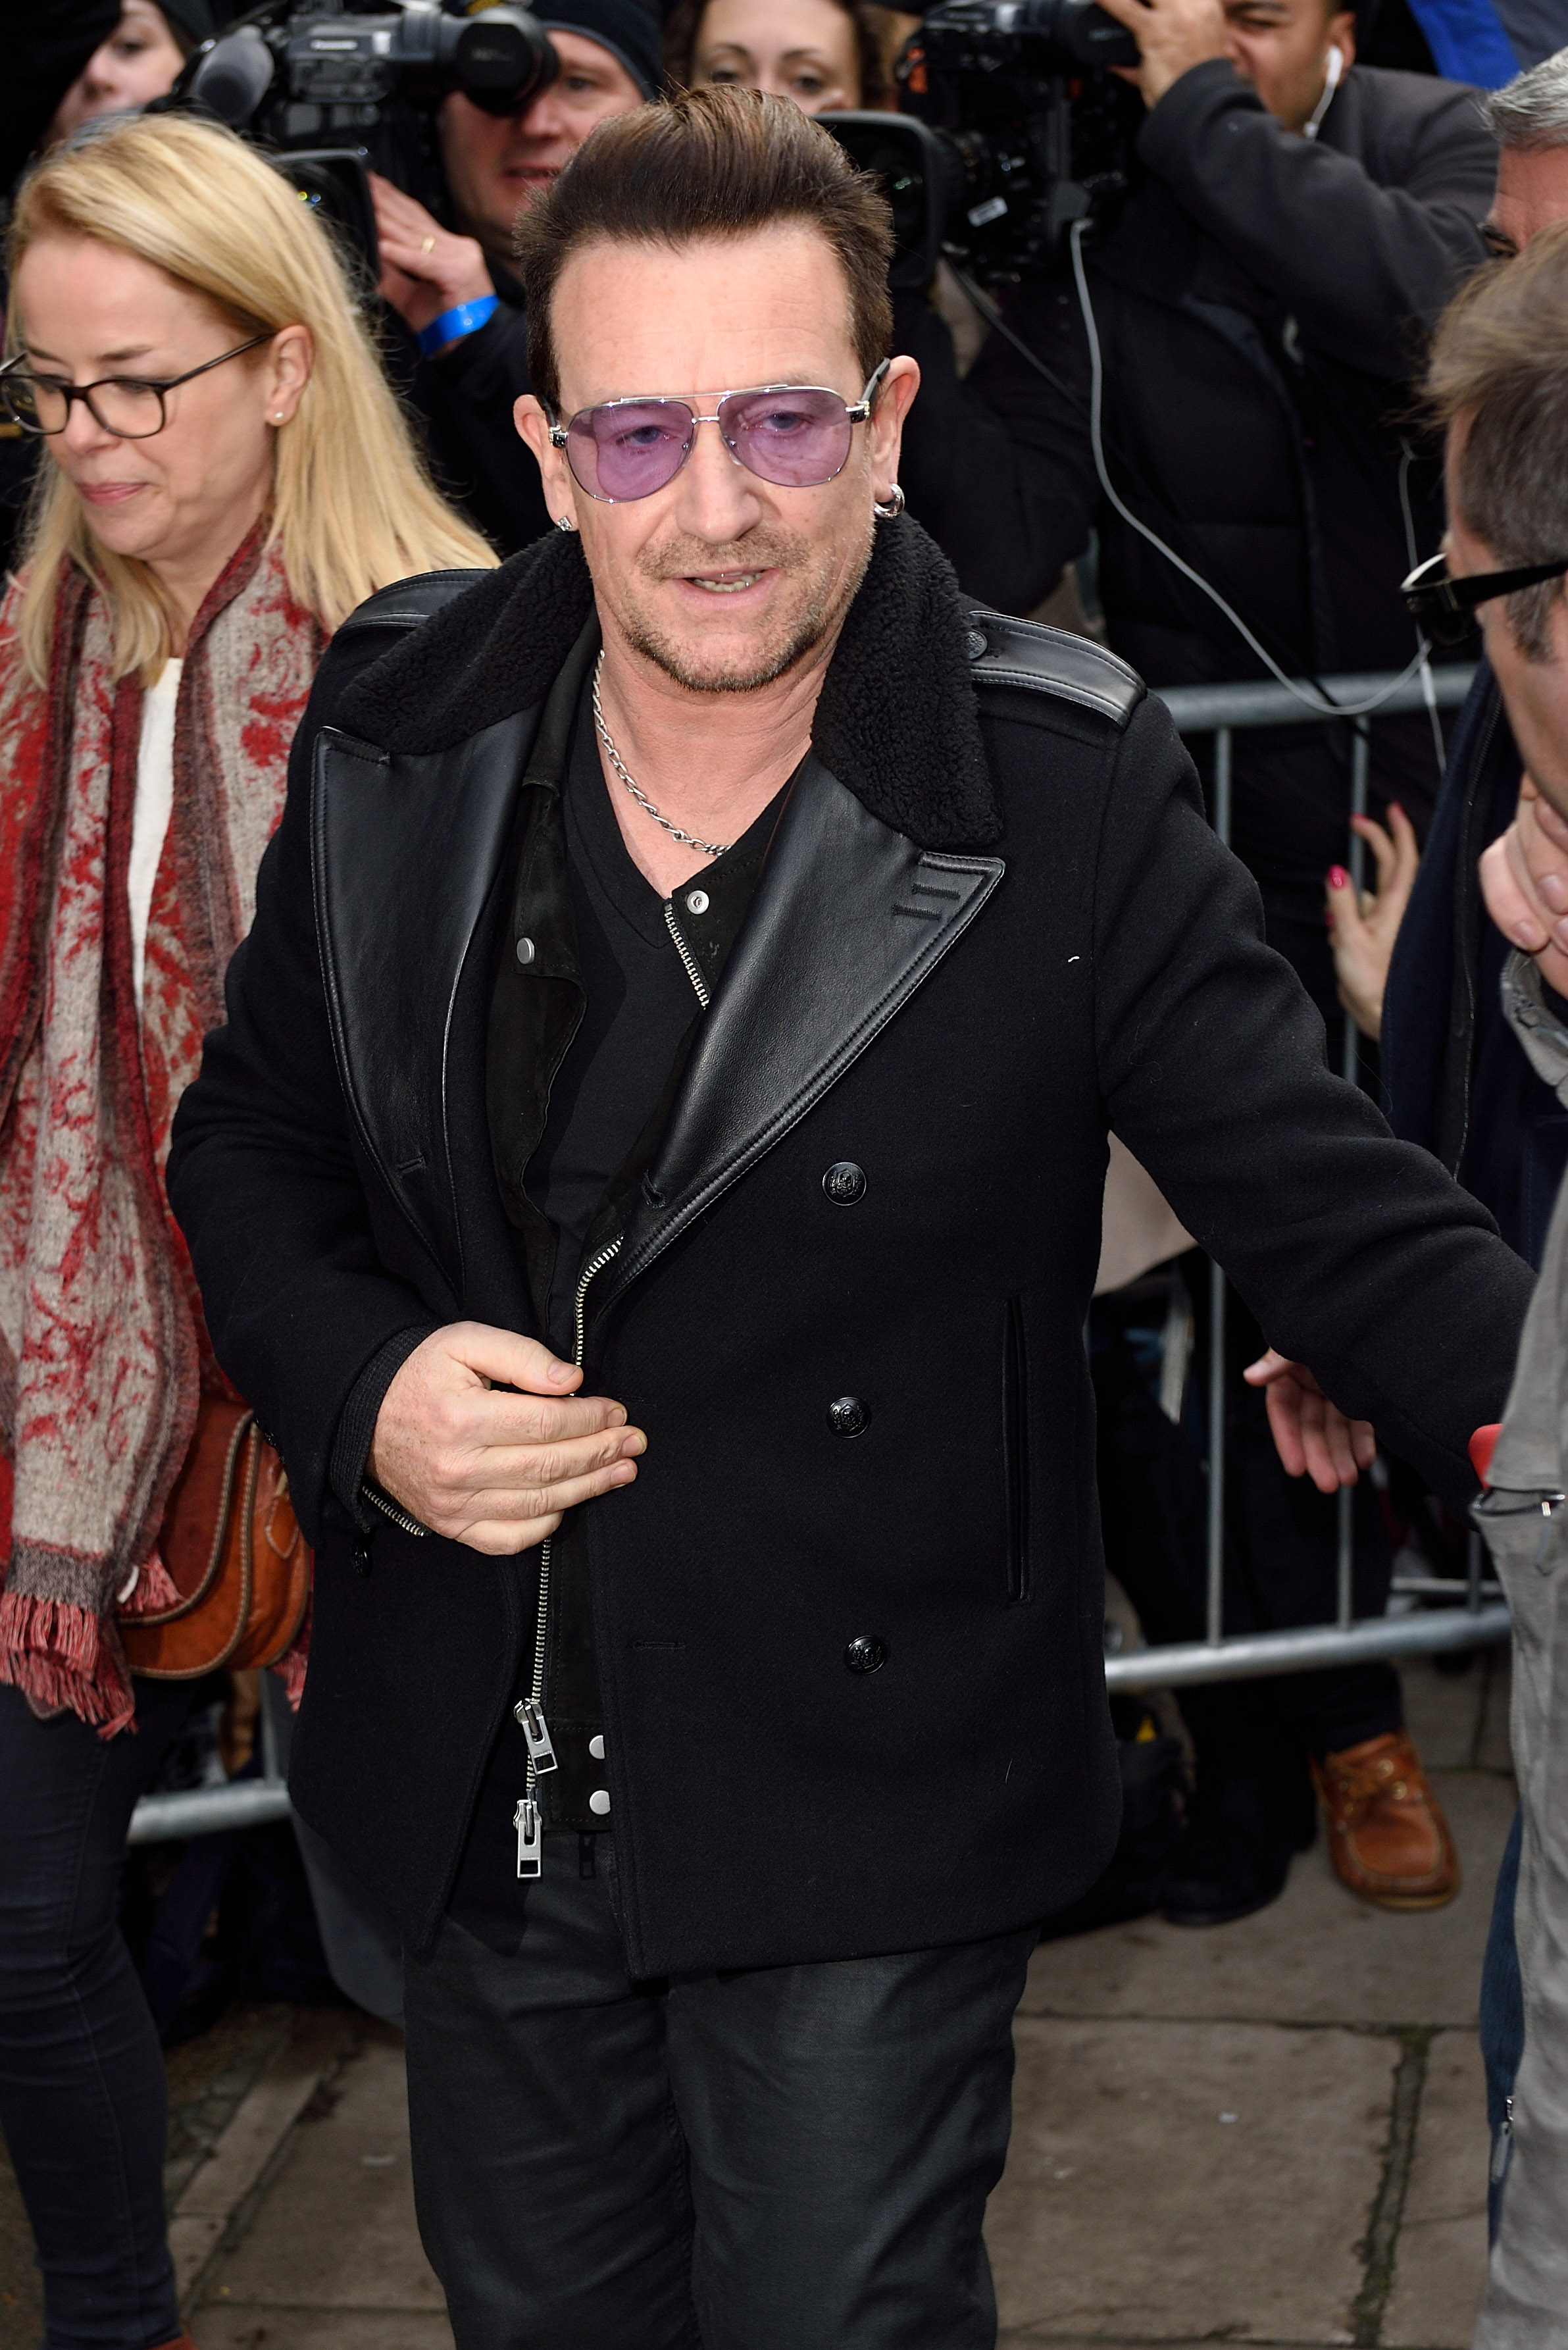 Bono attends to record the Band Aid 30 single on November 15, 2014 in London, England.